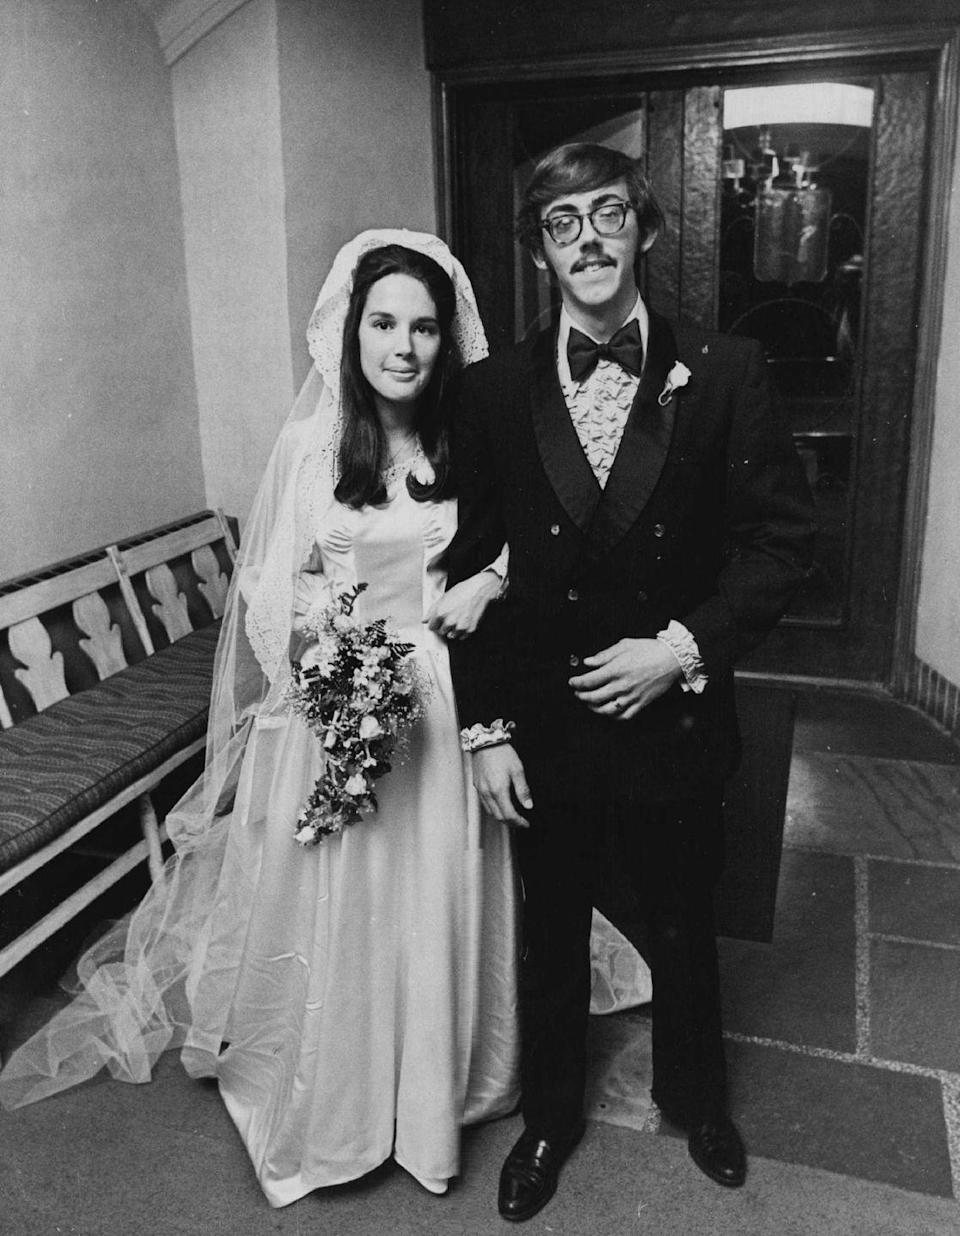 <p>It wouldn't be a '70s wedding without a guy wearing a ruffled shirt under his tux. The bride's look is more timeless, thanks to a floor-length gown and spray-style bouquet. </p>